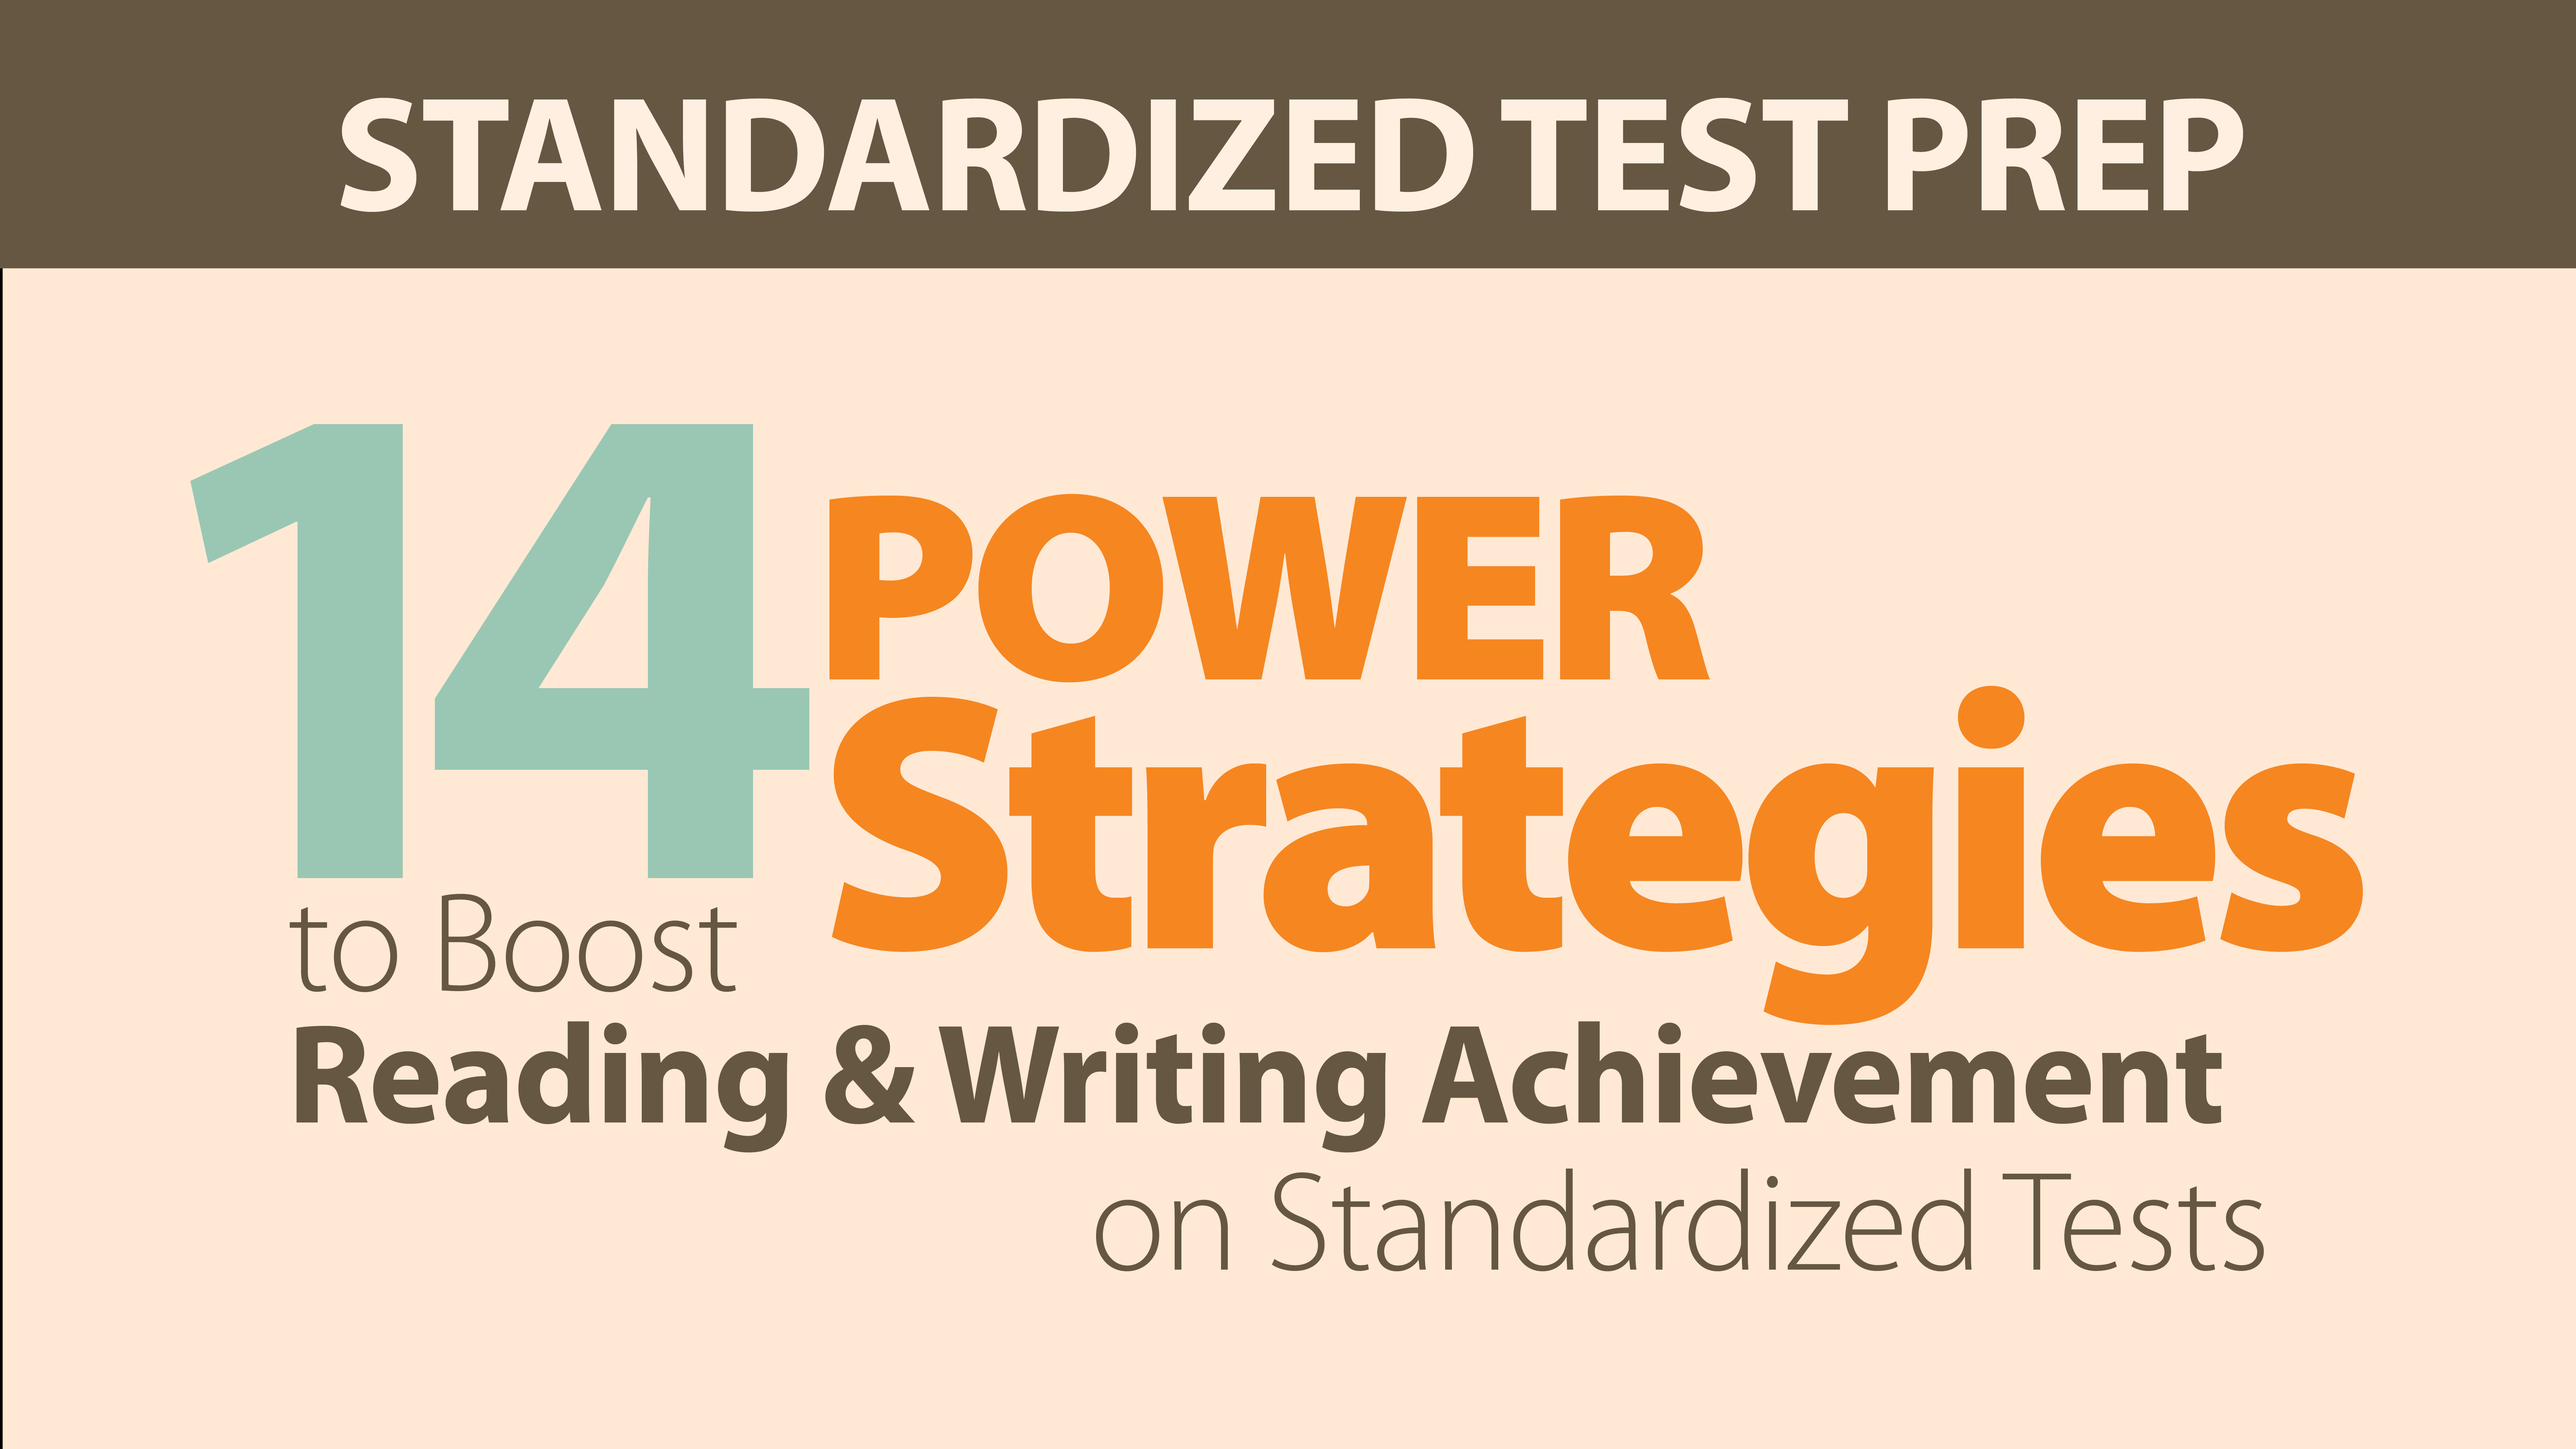 14 Power Strategies to Boost Reading & Writing Achievement on Standardized Tests Online Course with webAcademy by Smekens Education